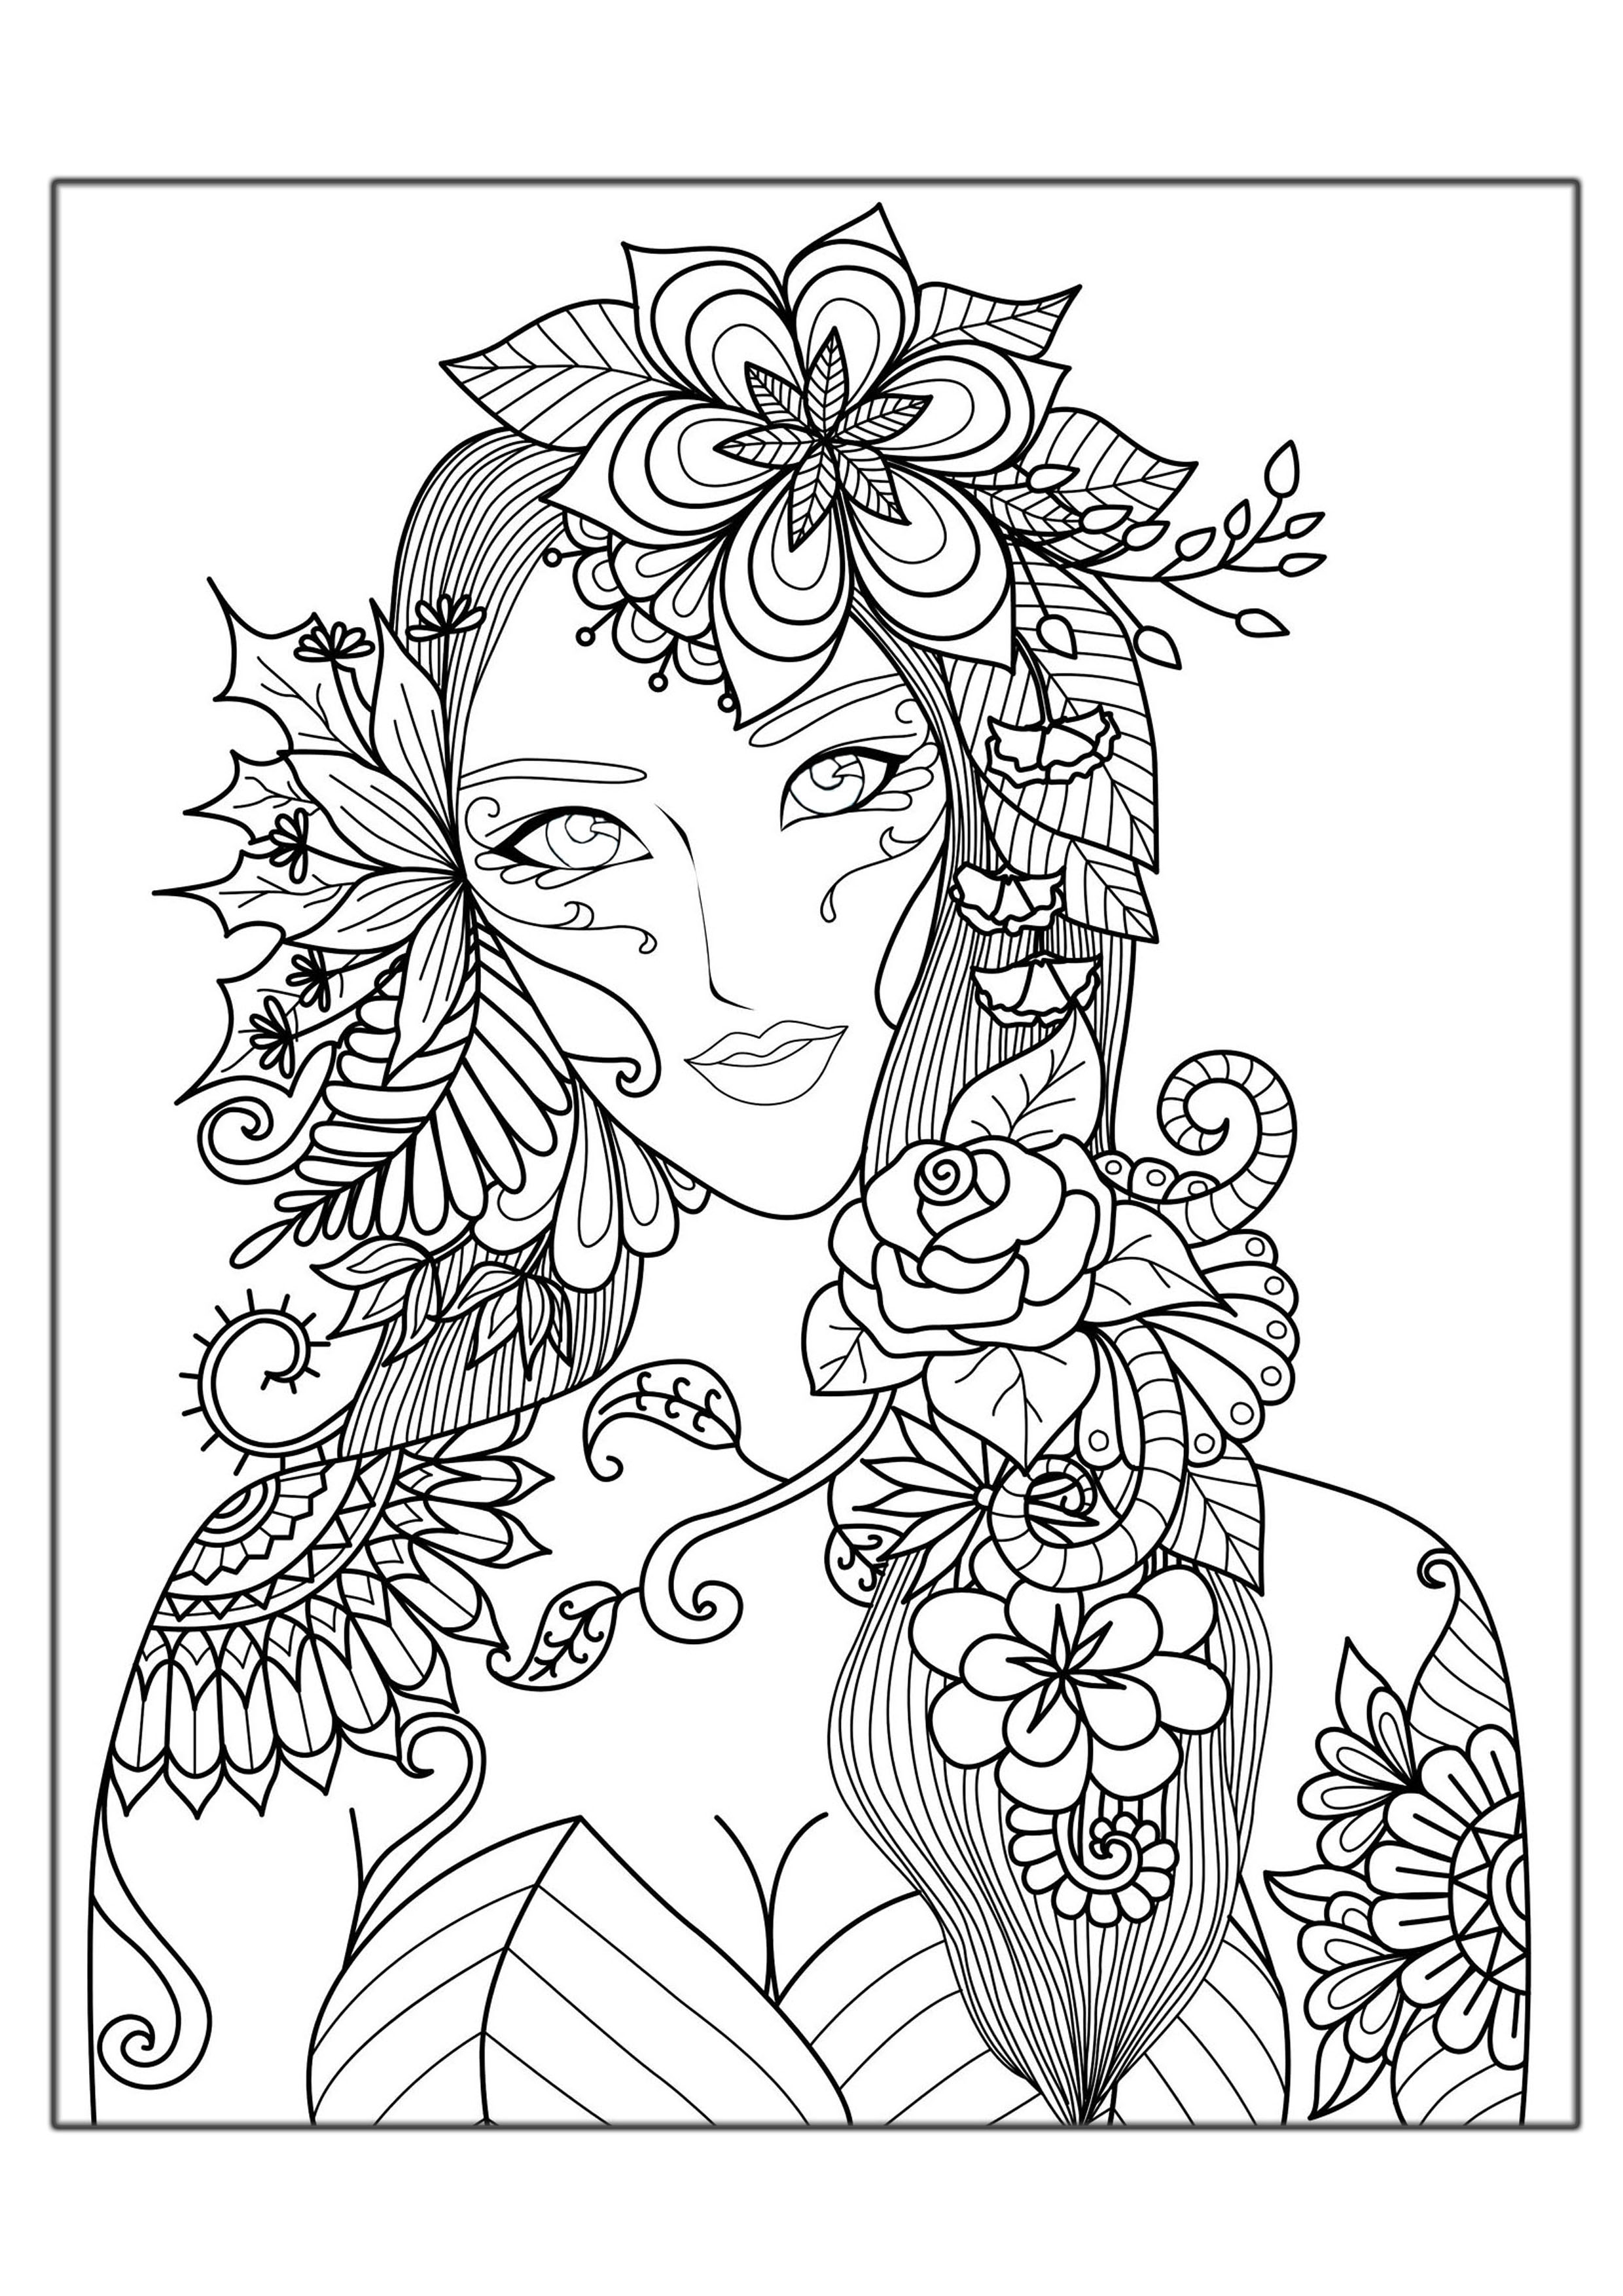 printable coloring pages for adults - hard coloring pages adults